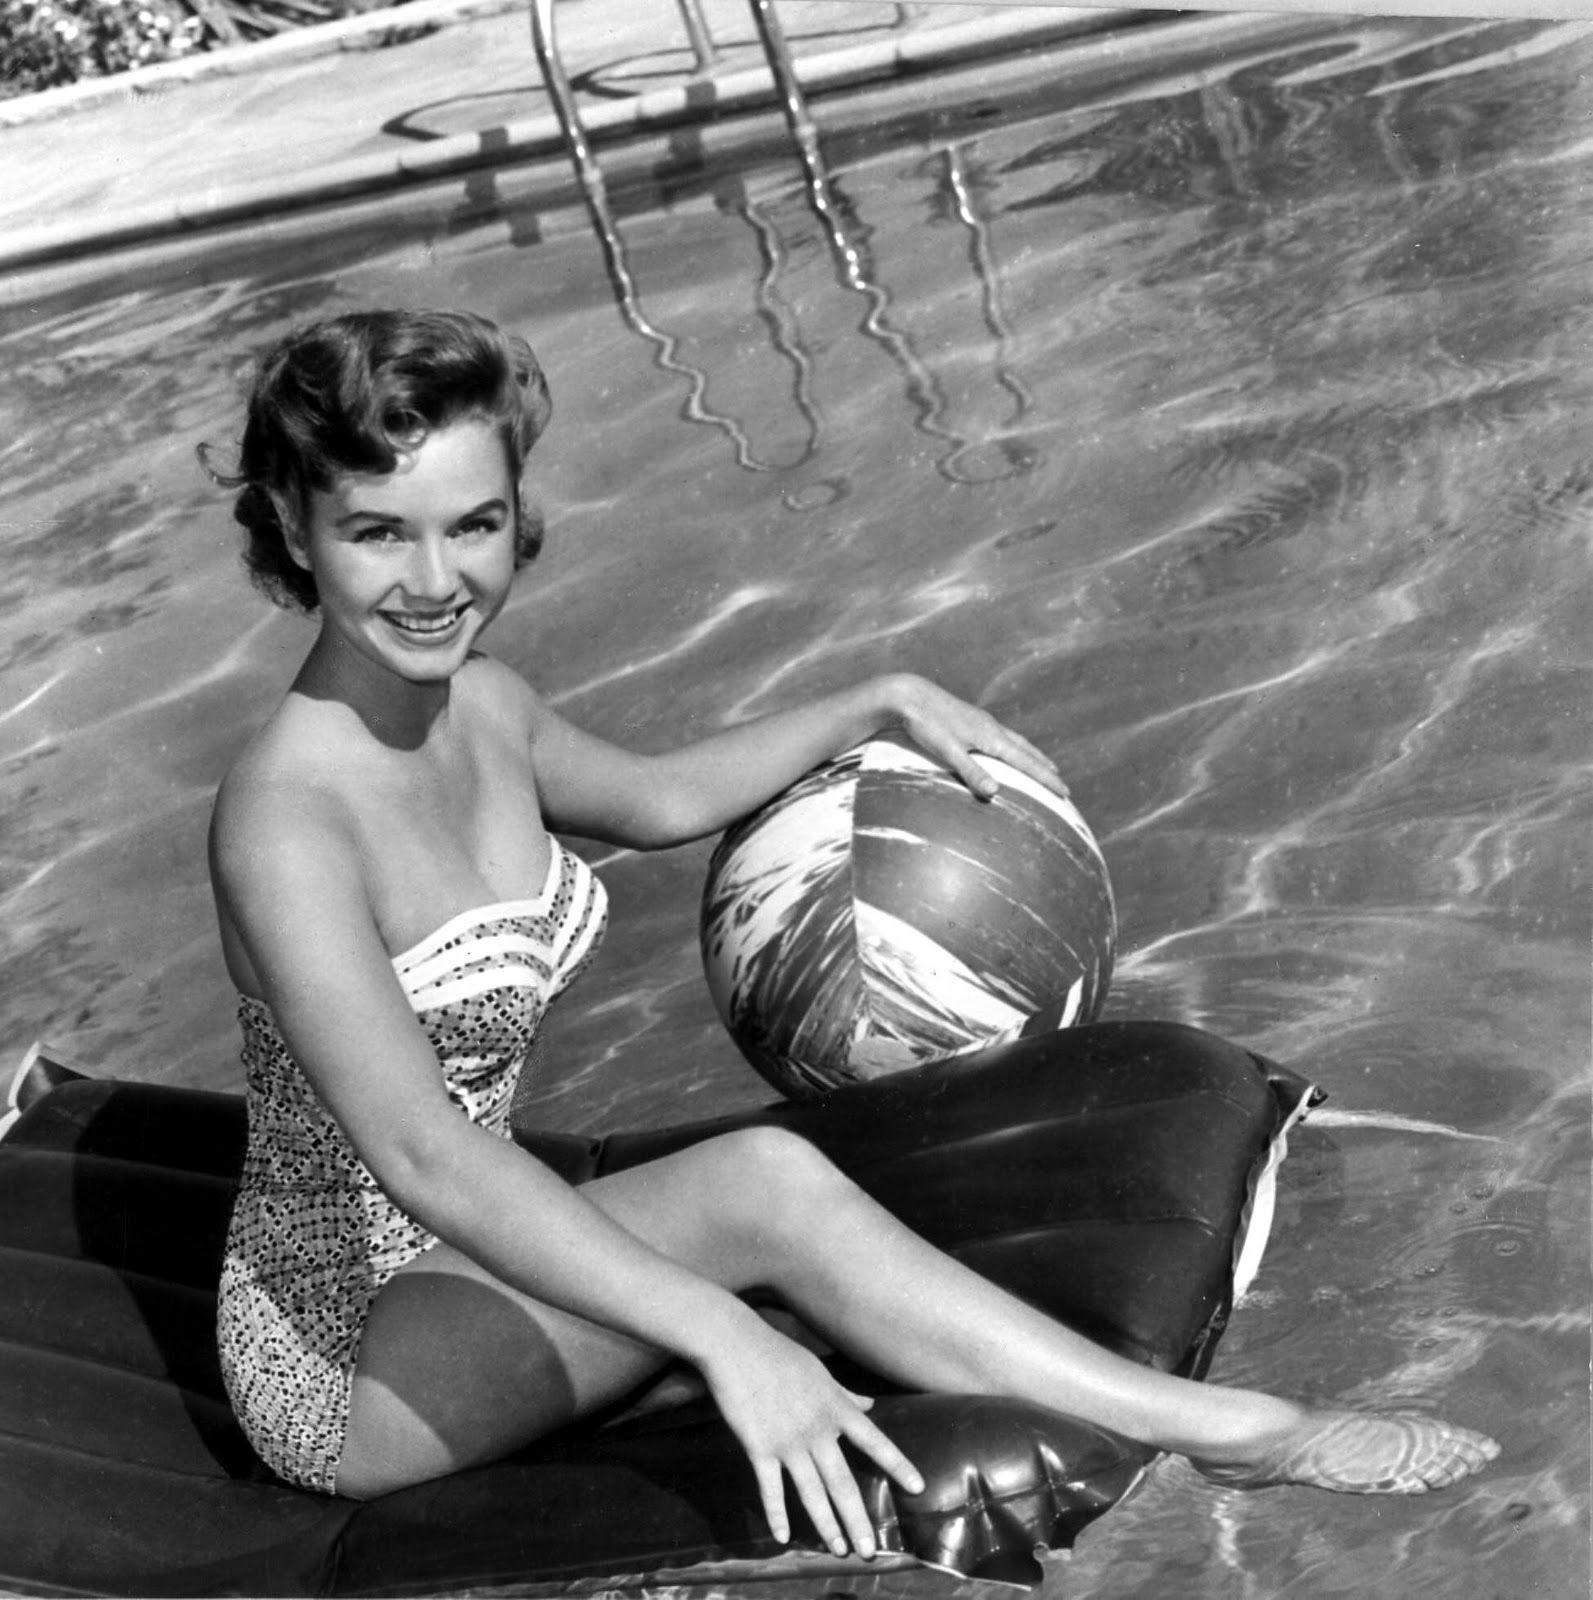 Debbie Reynolds photo 8 of 46 pics, wallpaper - photo #412230 ...